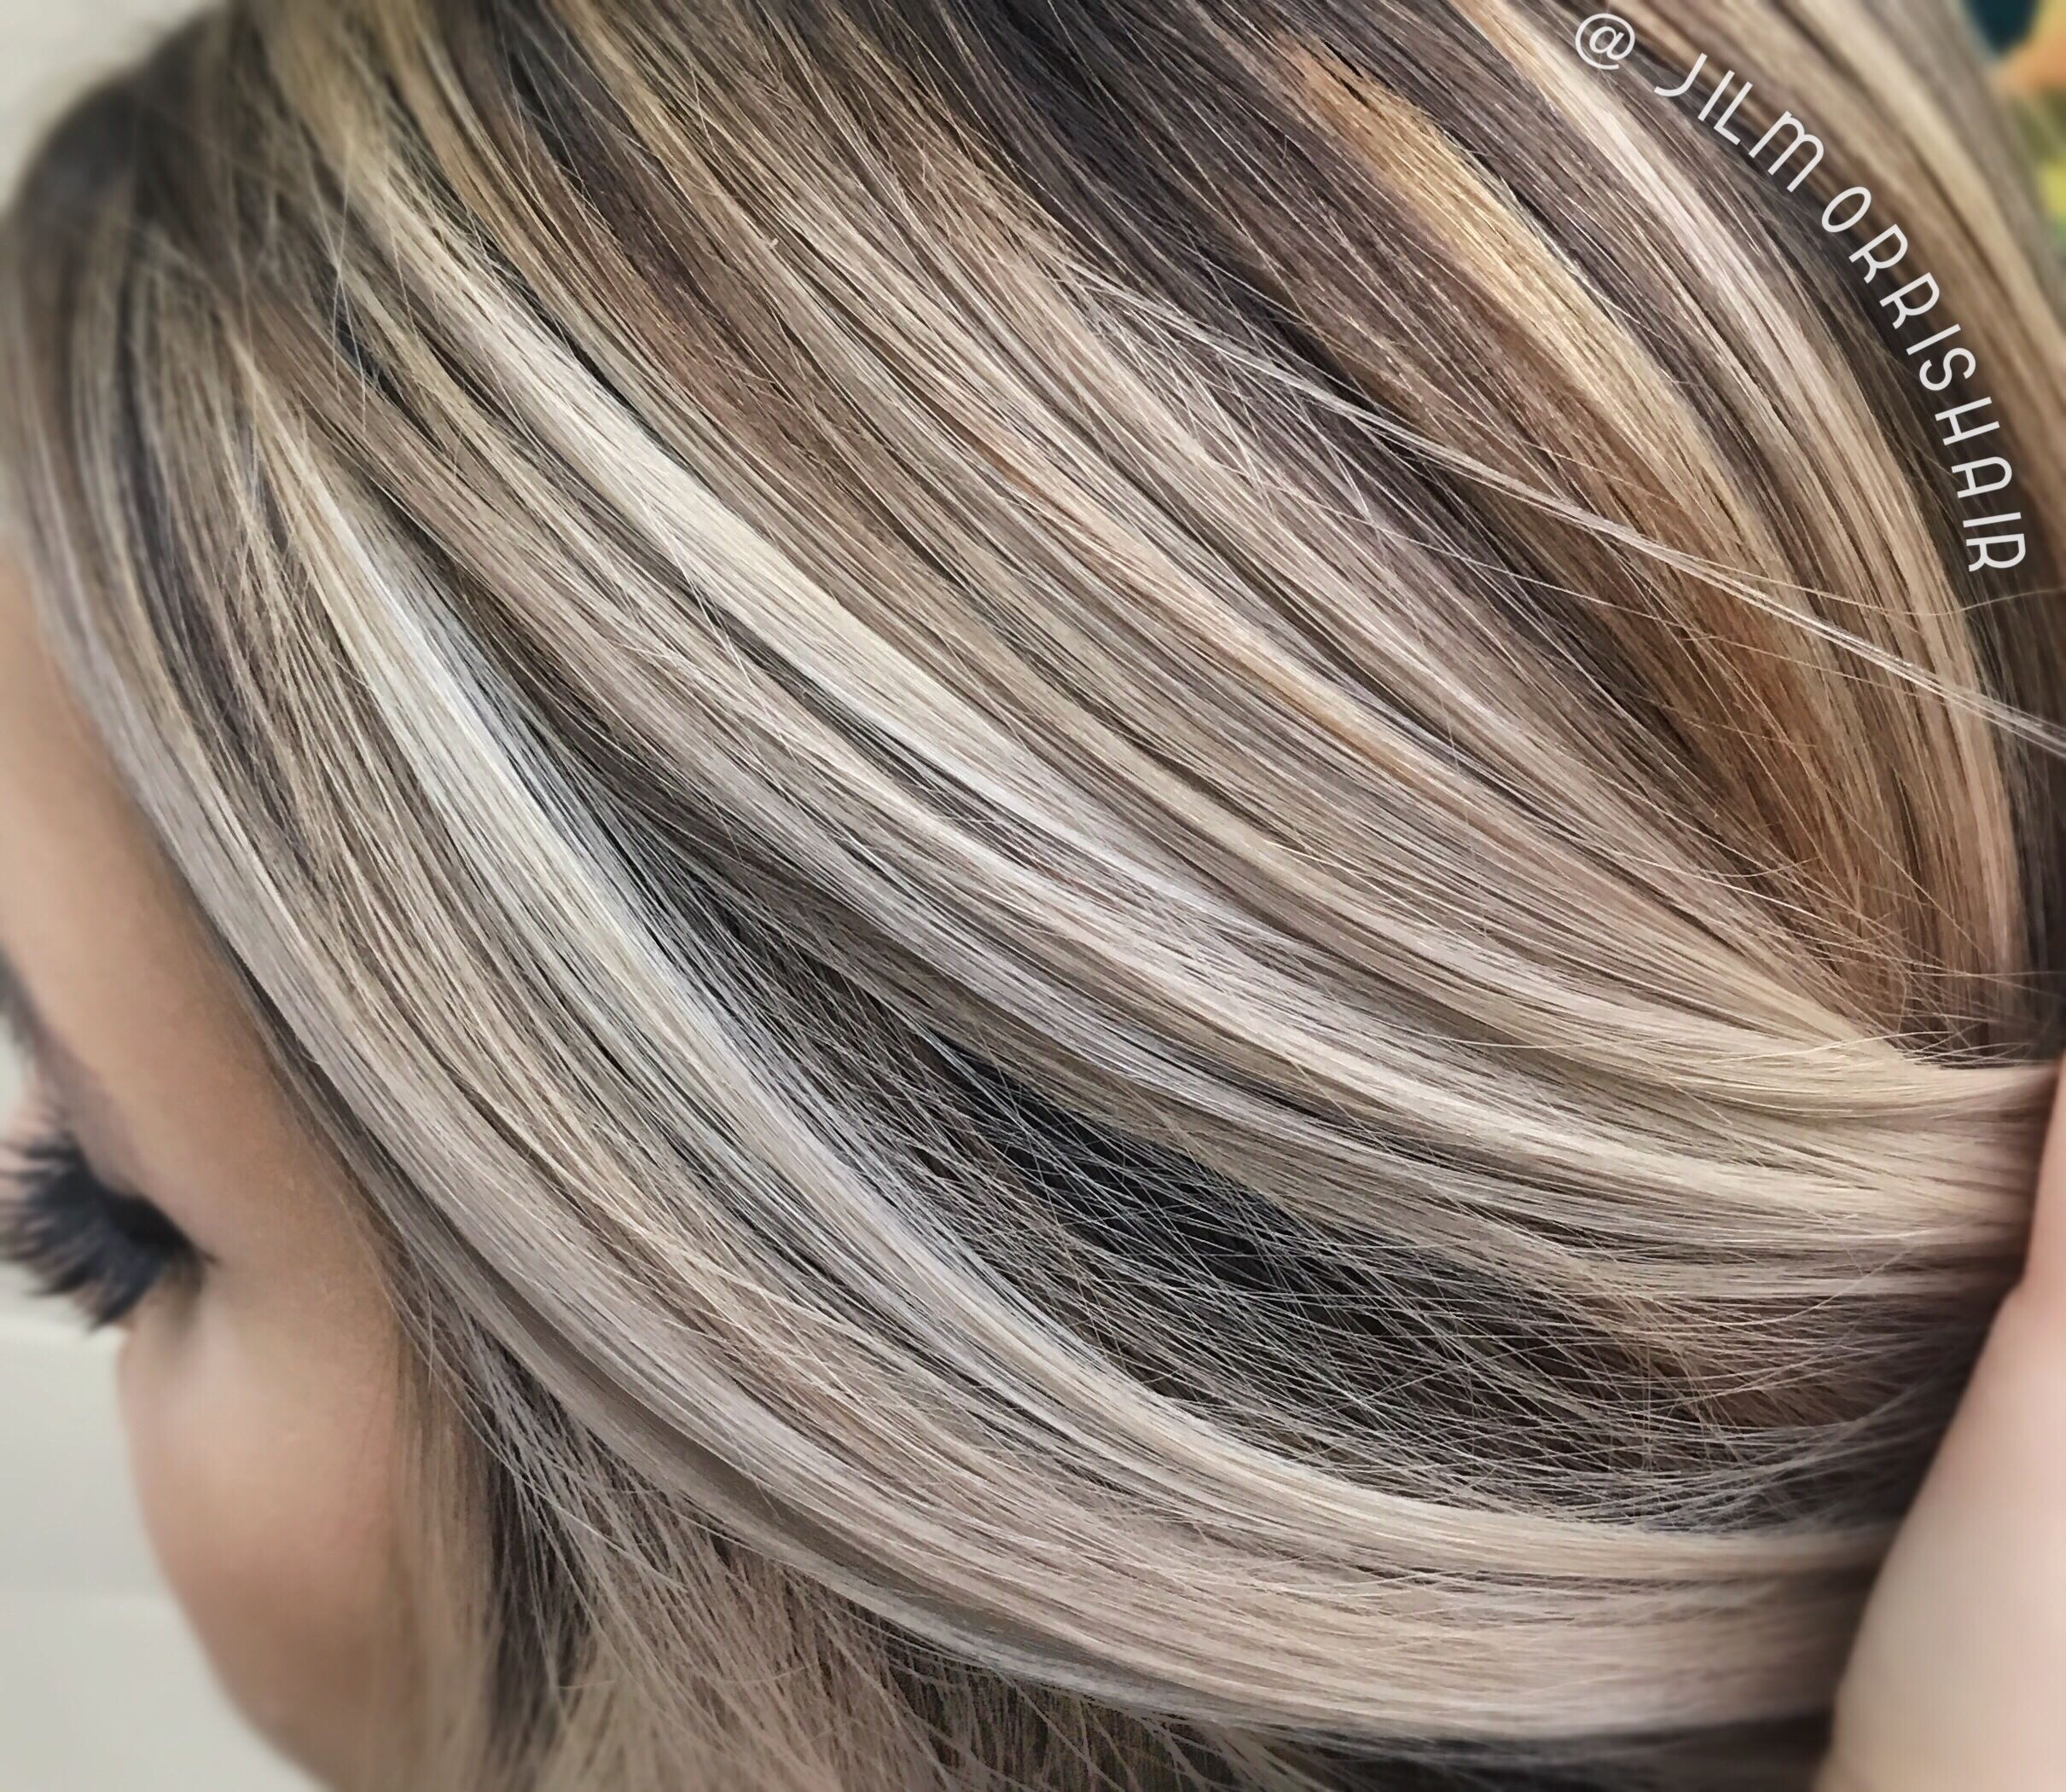 Cool Ashy Blonde Balayage Highlights With Neutral Shadow Root Brown Blonde Hair Brown Hair